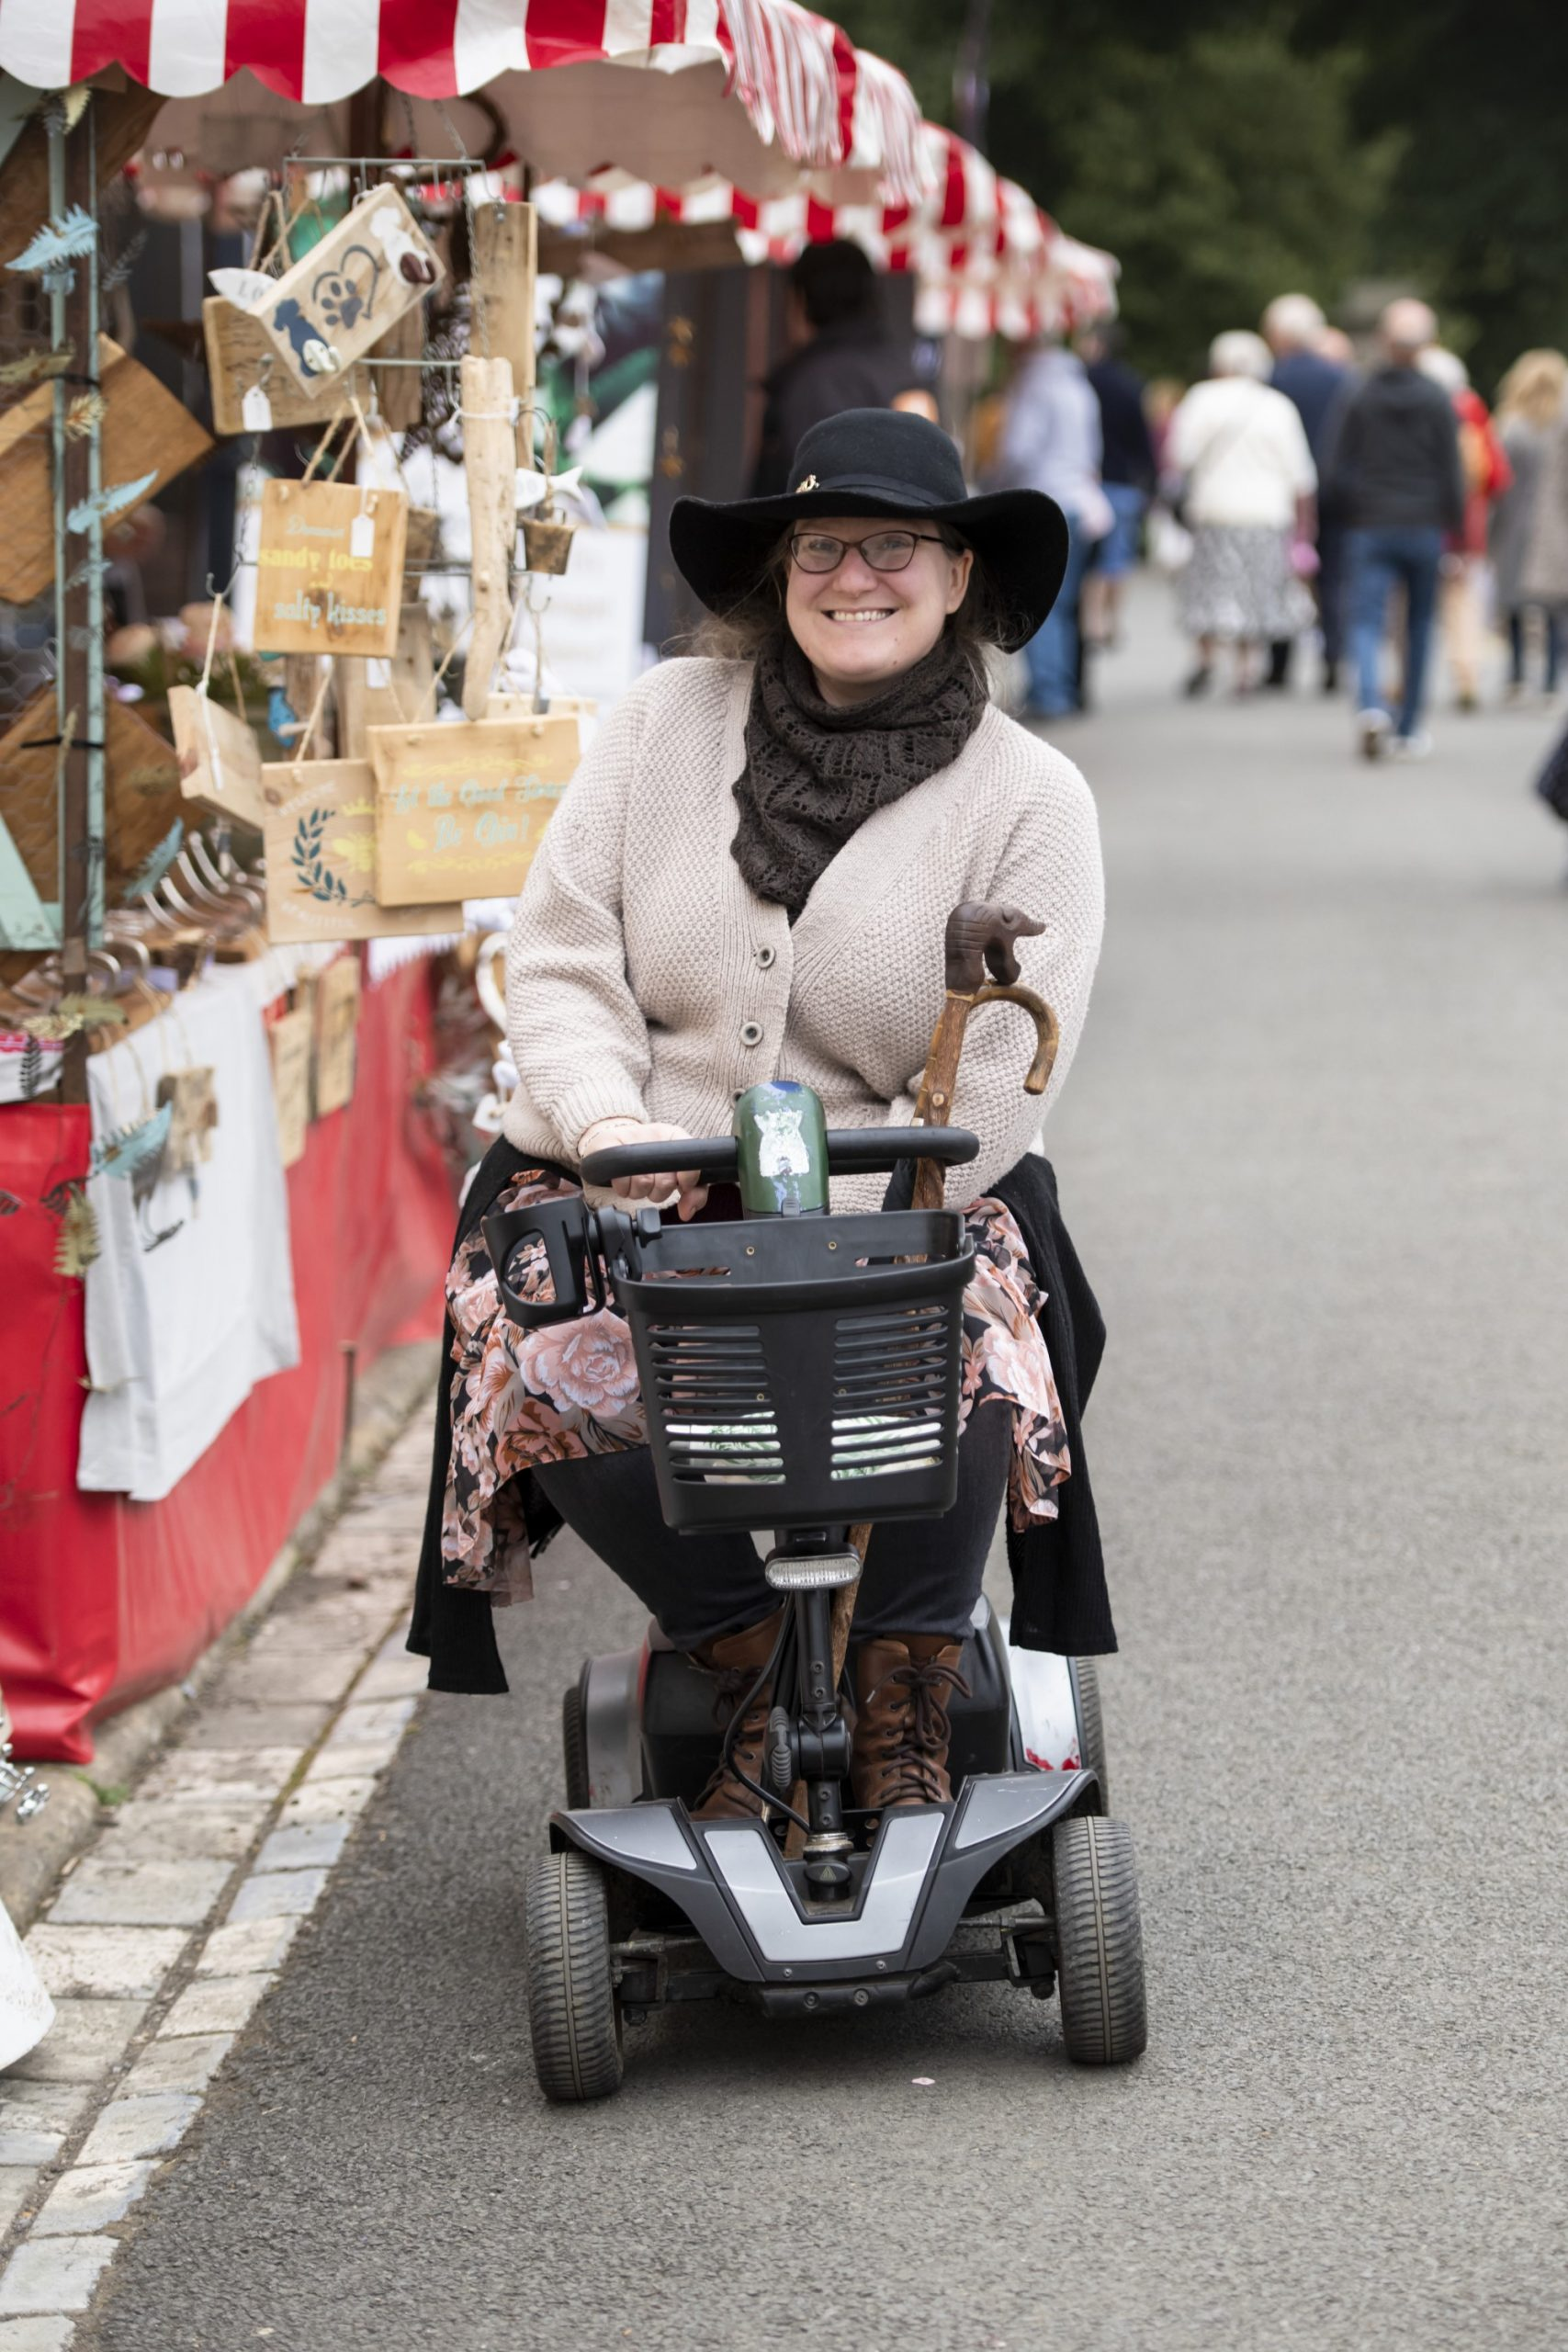 Visitor on a motorised scooter at Raby Castle's summer market